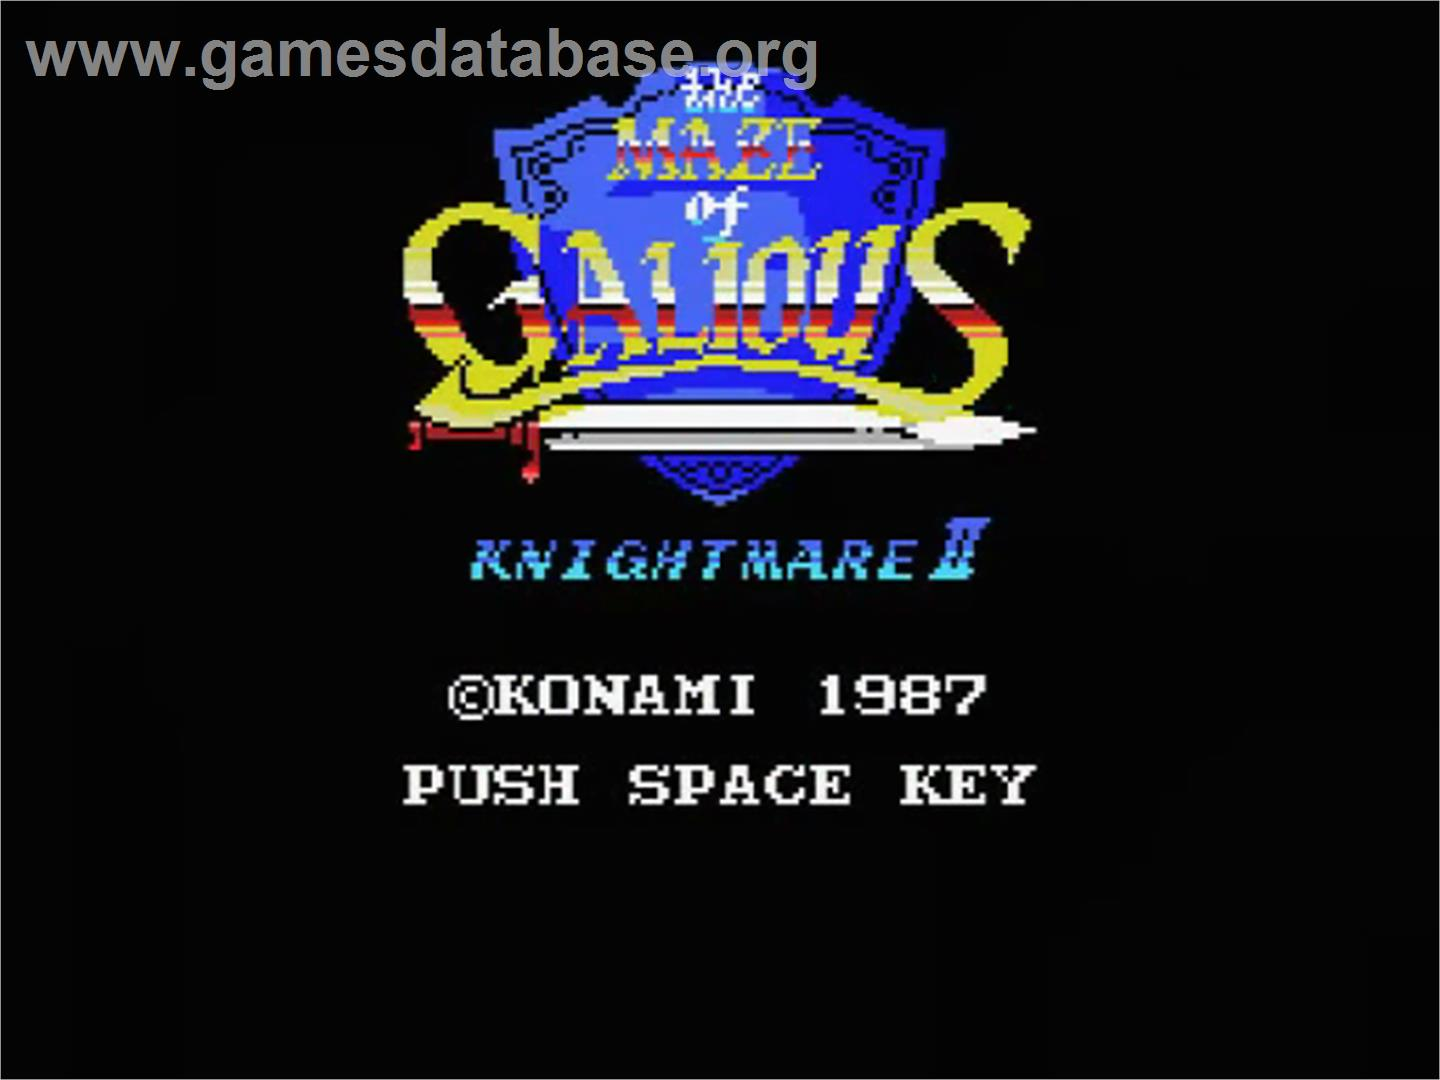 Knightmare_2-_The_Maze_of_Galious_-_1987_-_Konami.jpg